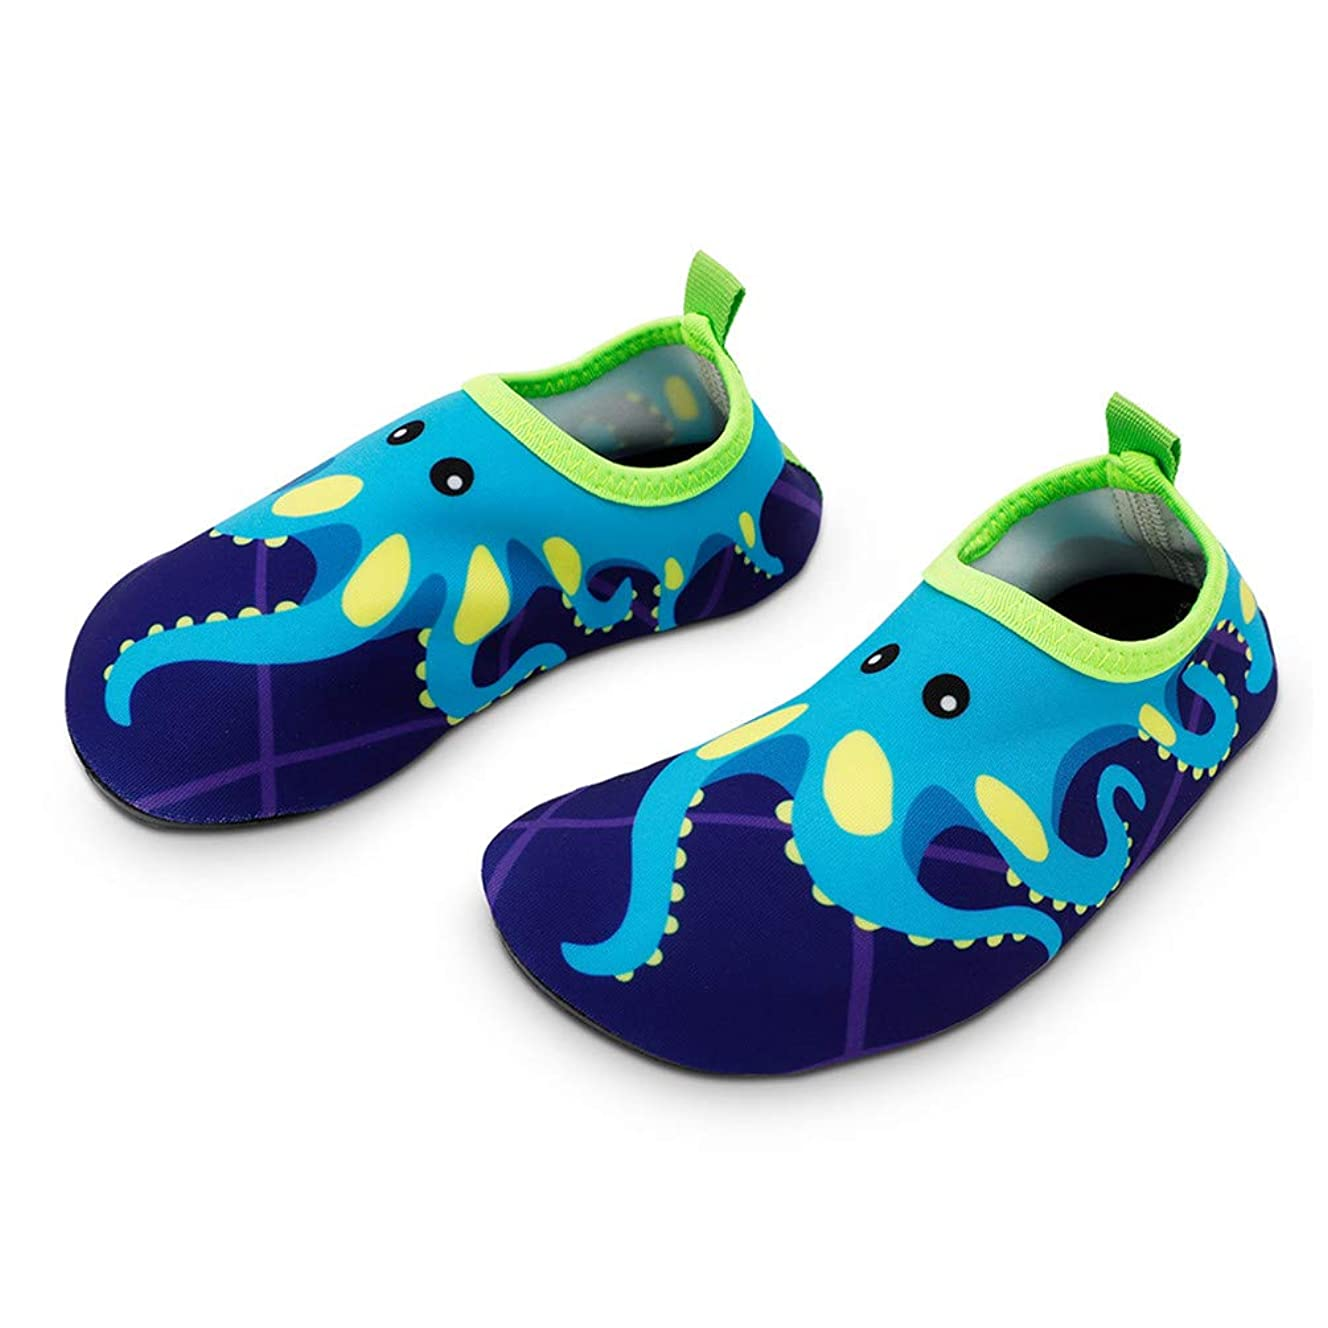 Bigib Toddler Kids Swim Water Shoes Quick Dry Non-Slip Water Skin Barefoot Sports Shoes Aqua?Socks for Boys?Girls?Toddler